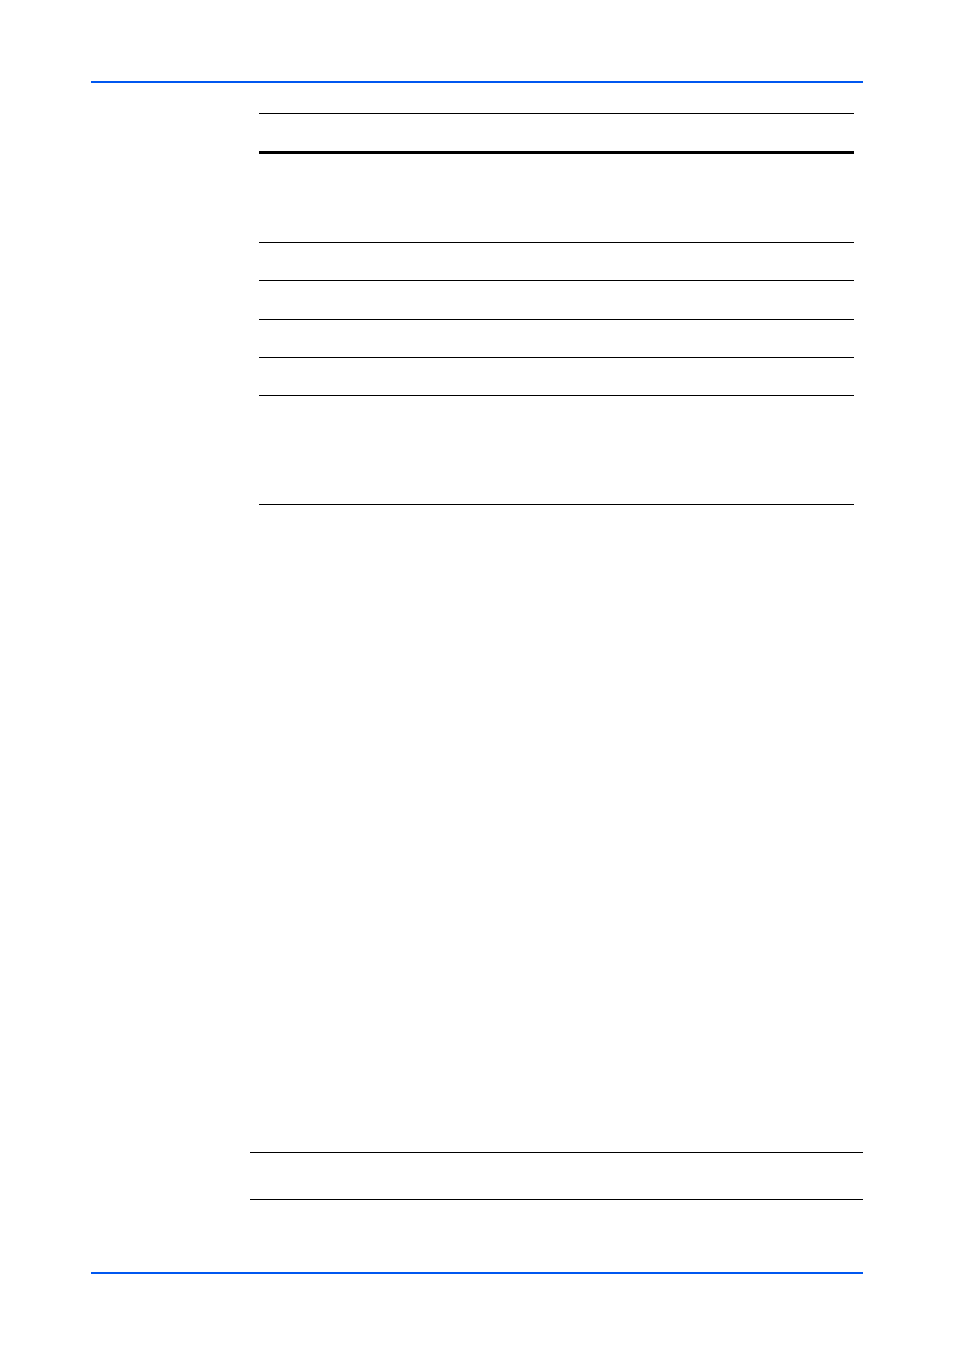 Kyocera COMMAND CENTER Multifunctional Printer User Manual | Page 27